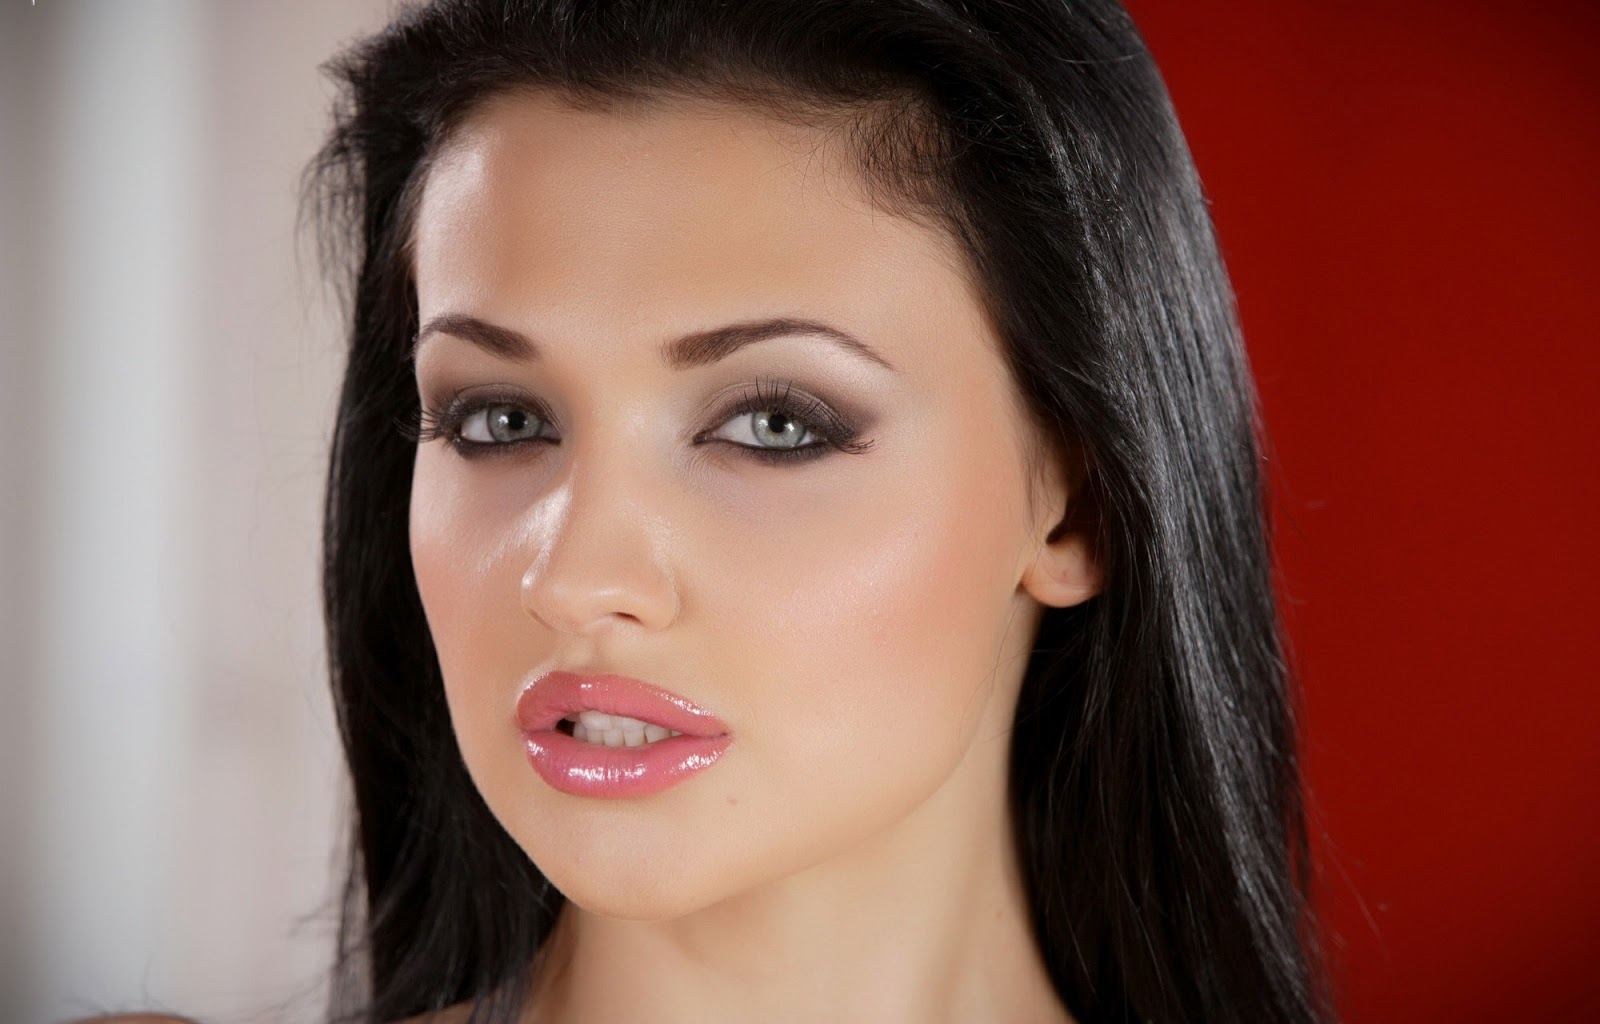 Brazzers aletta ocean is one sexy spy 10